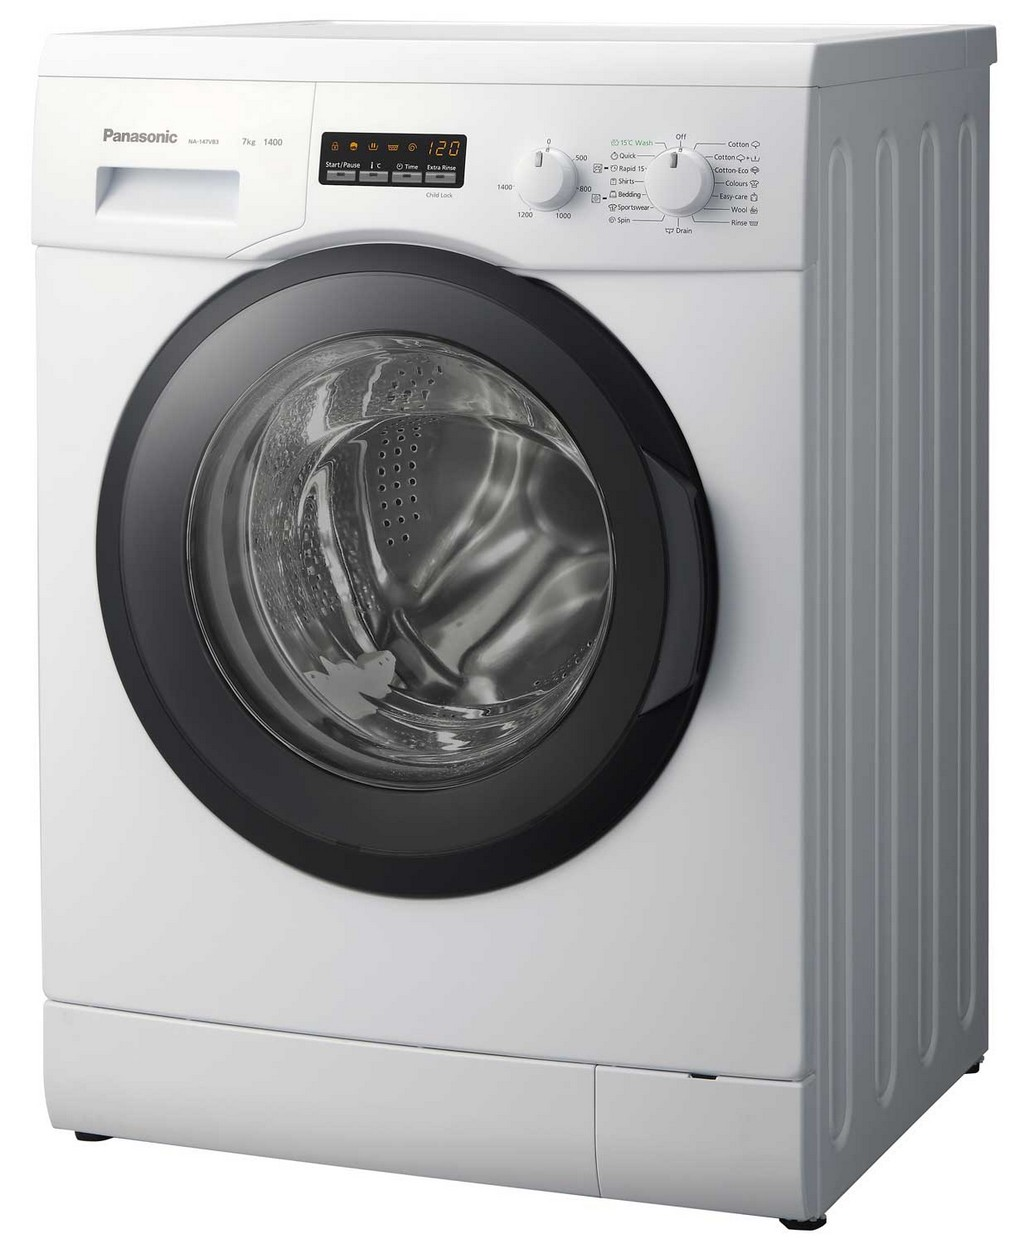 candy washing machine, washing machine offers, samsung washing machine